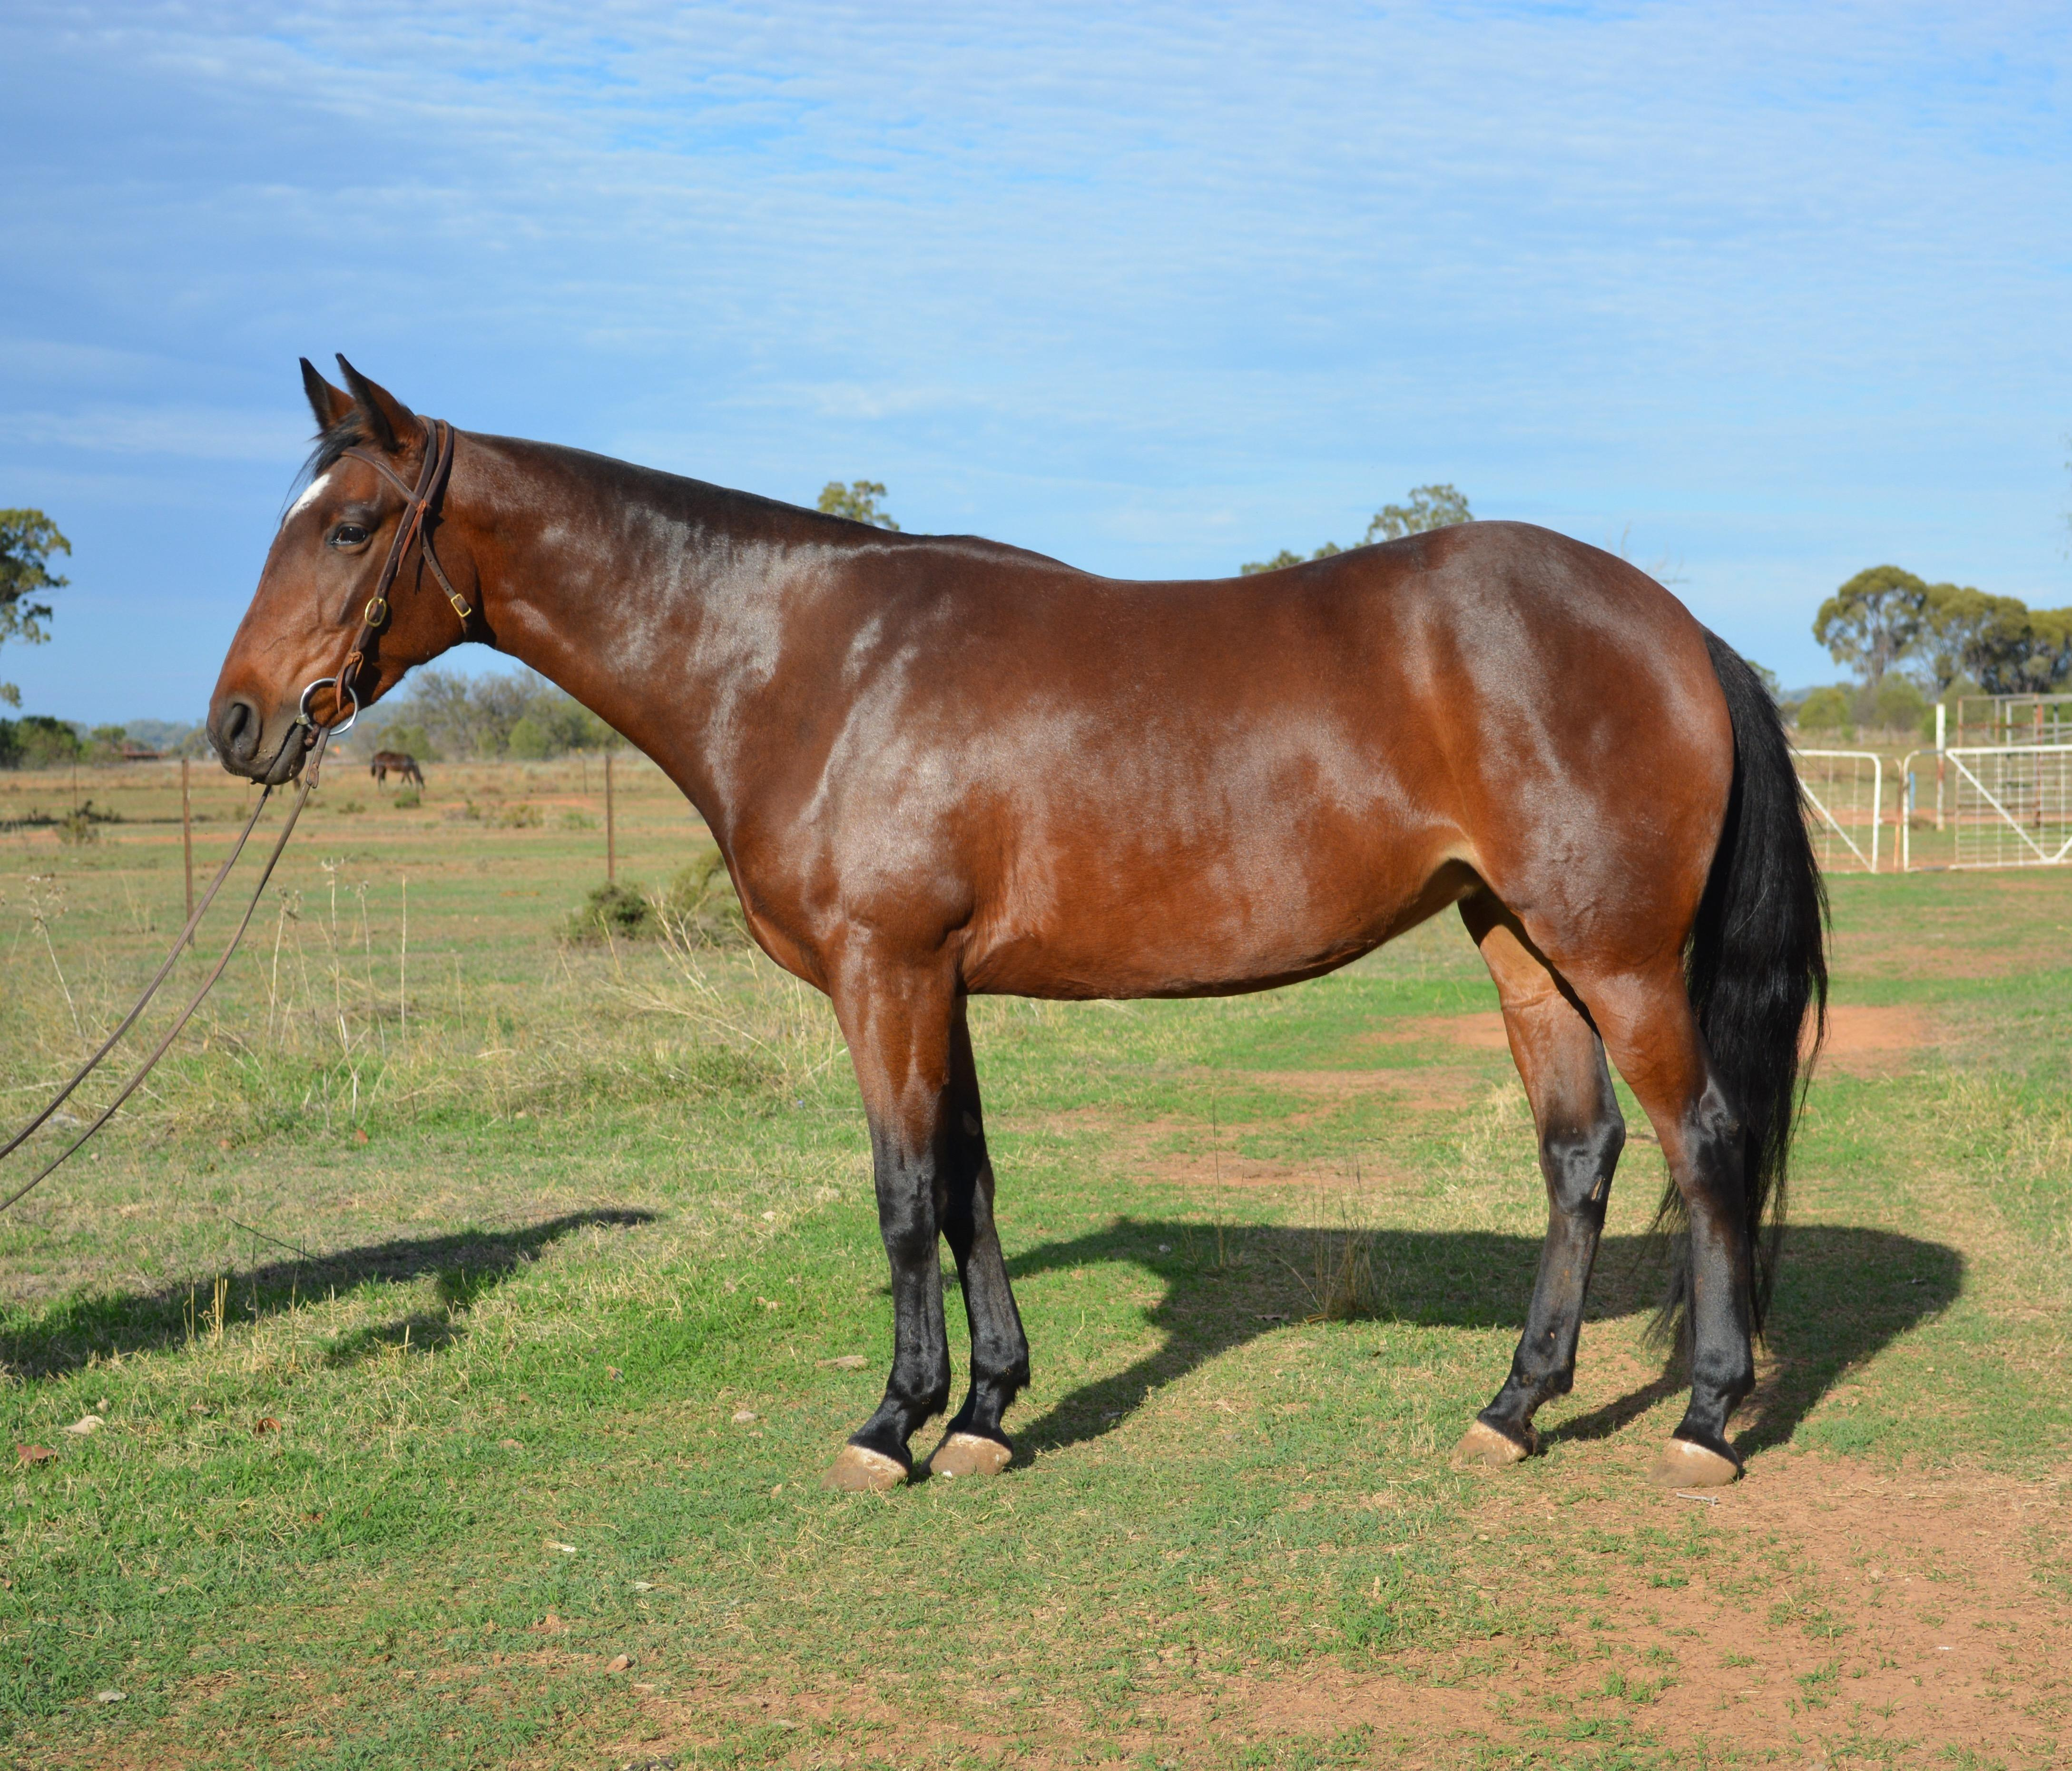 Exciting campdraft prospect by Knights Nicholas